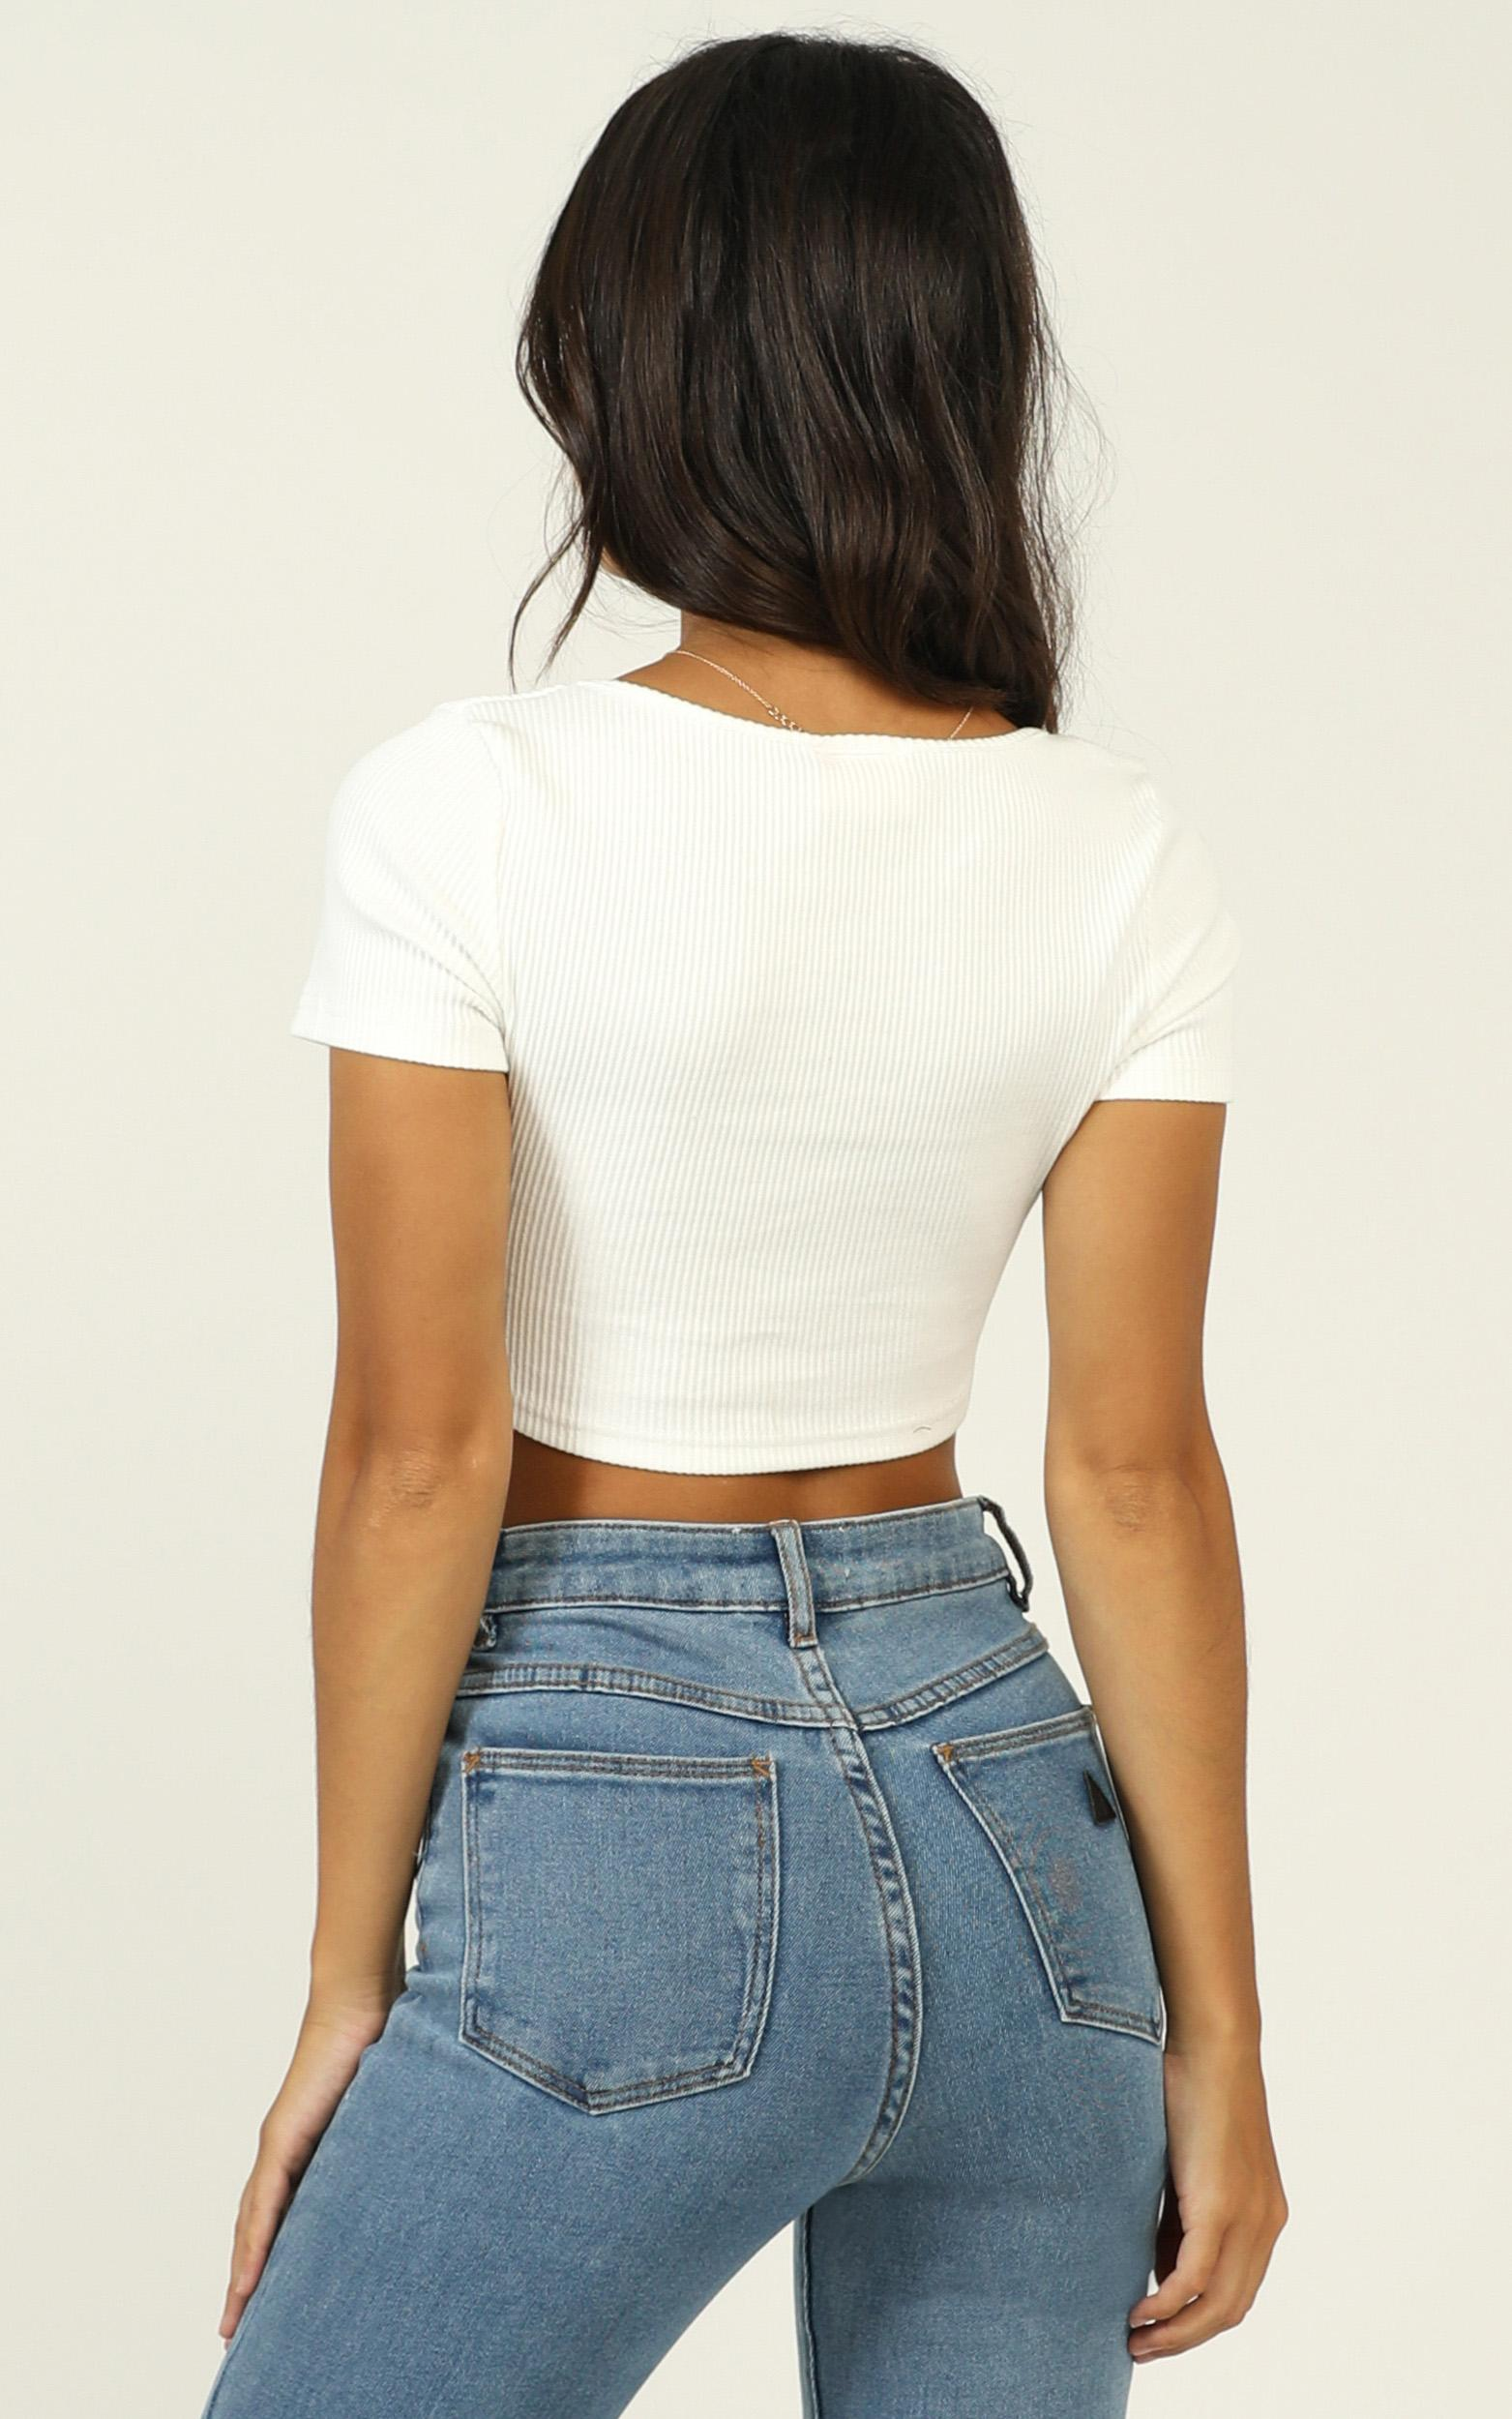 Brooklyn girl top in white - 16 (XXL), White, hi-res image number null